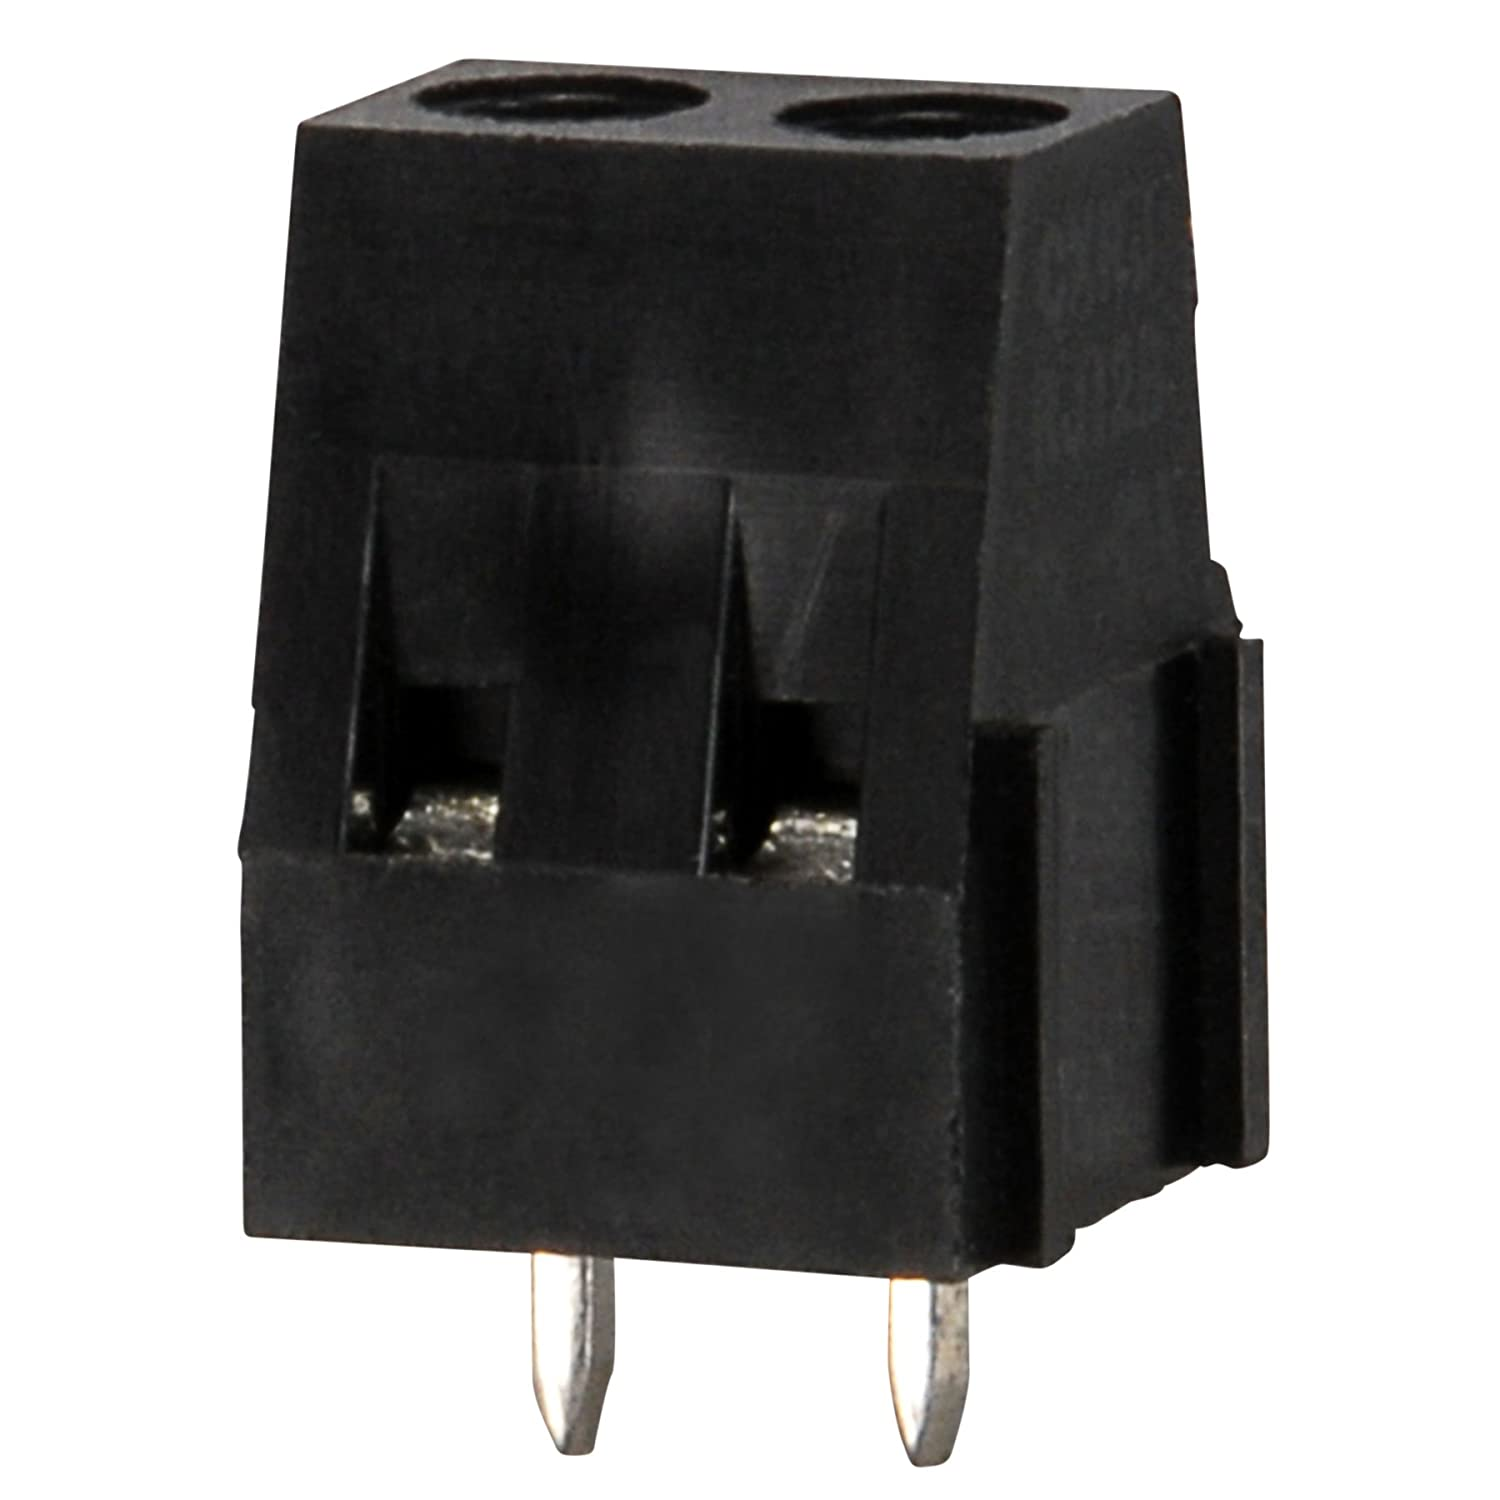 Sure Electronics AA-AA11136 Two Conductor Screw Terminals for Amplifier Boards 10 Pcs.